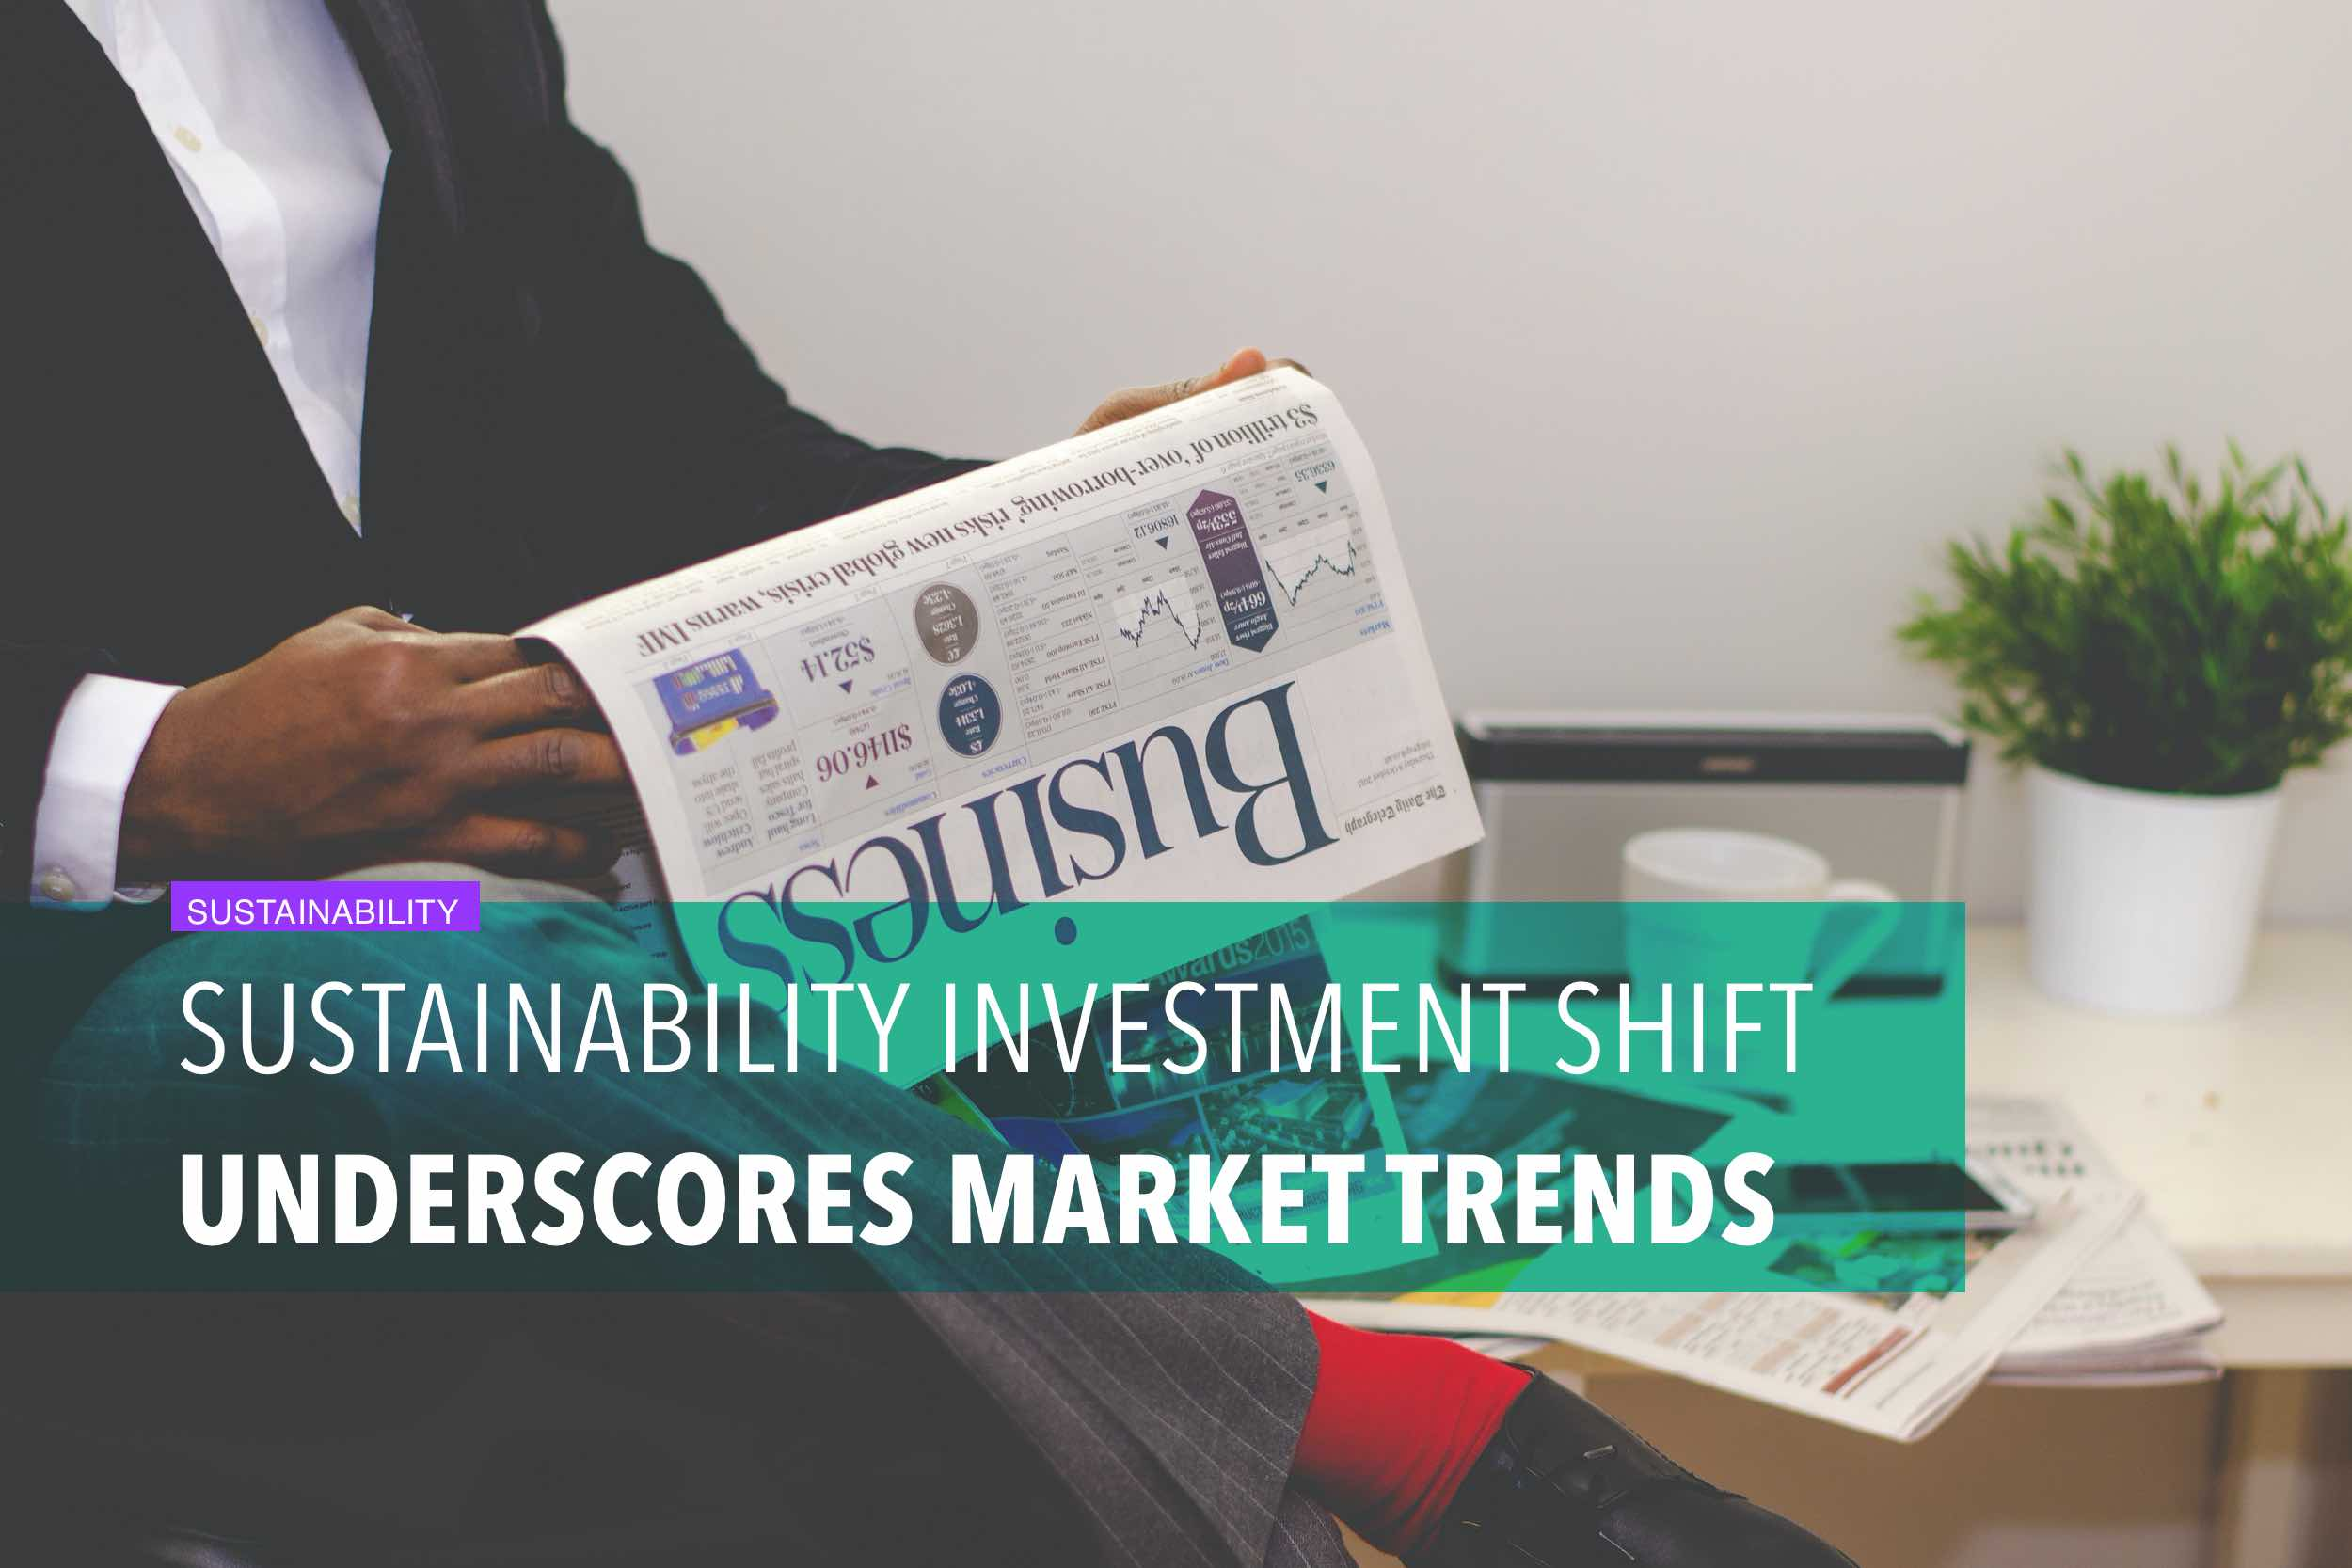 Sustainability investment shift underscores market trends